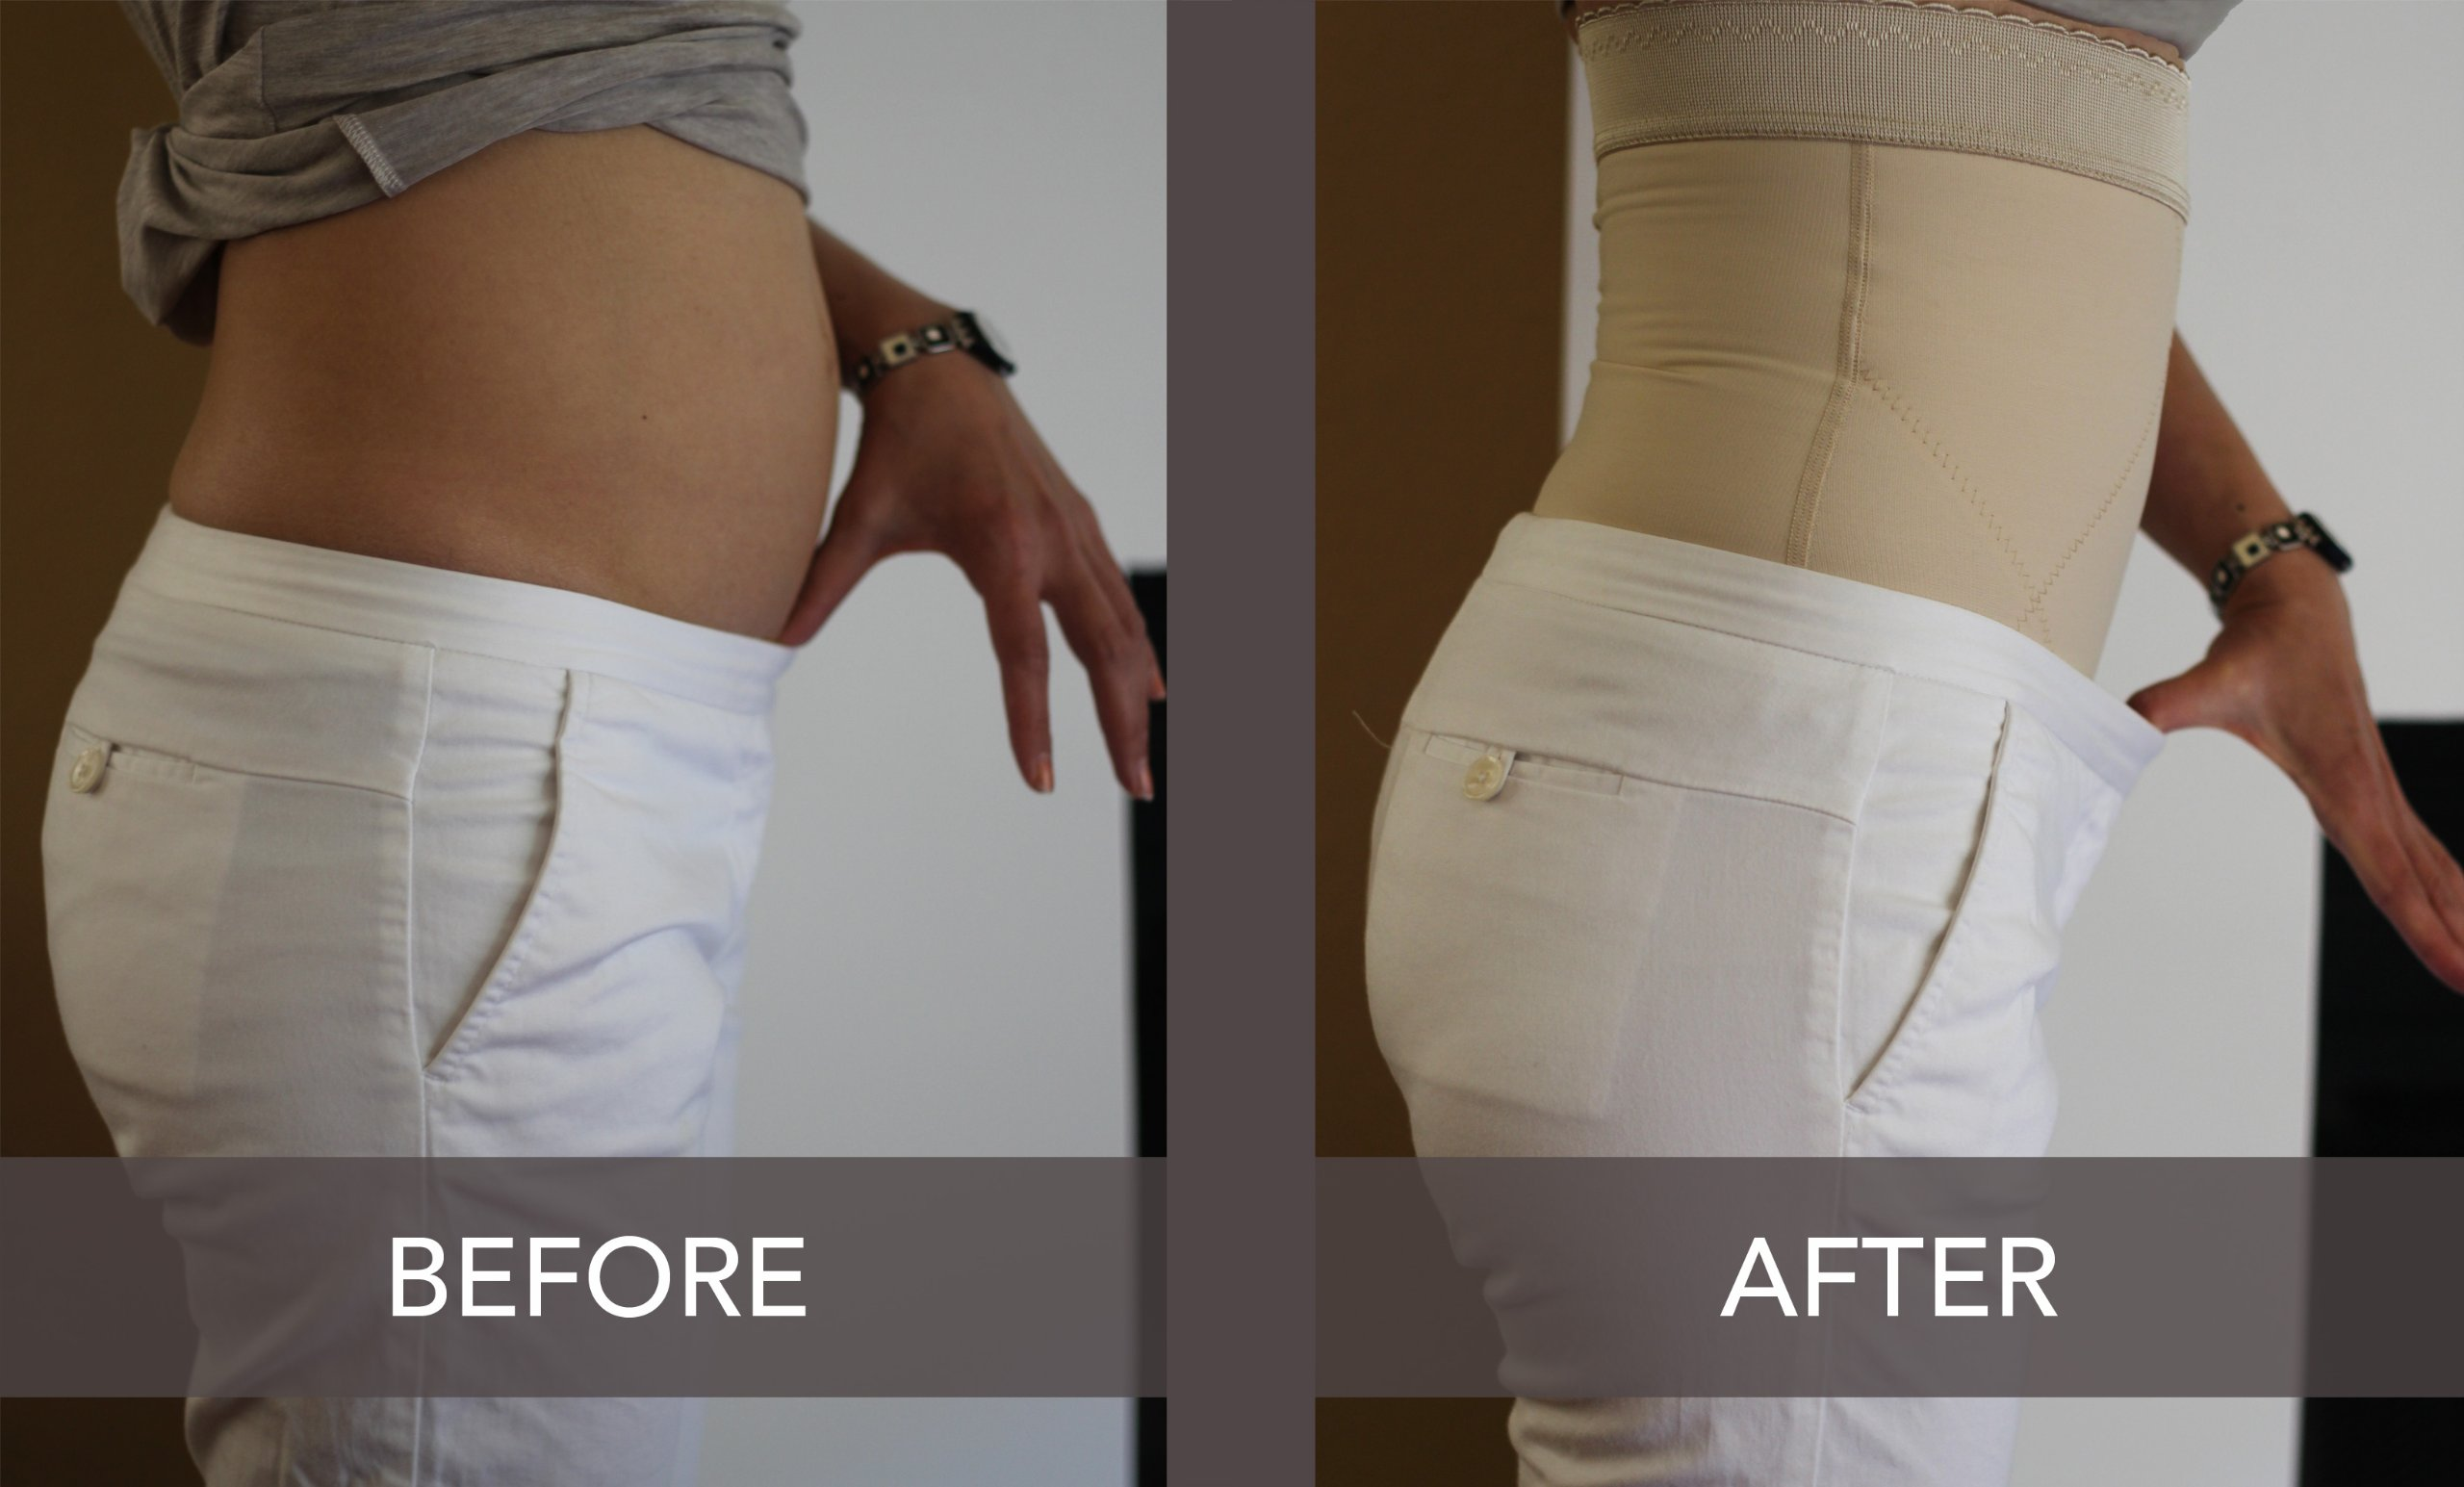 Wink Post-pregnancy Belly Compression Postpartum Girdle (Pull on style) - XL by Wink (Image #4)